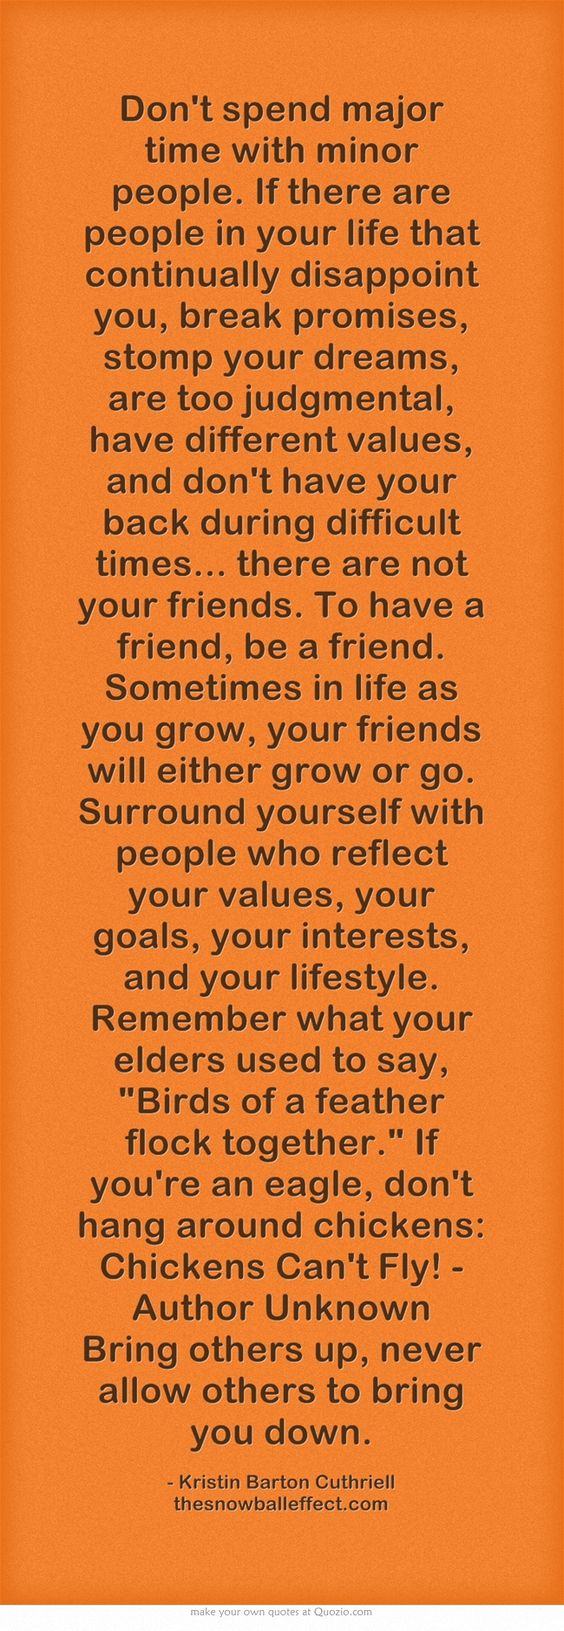 Don't spend major time with minor people.